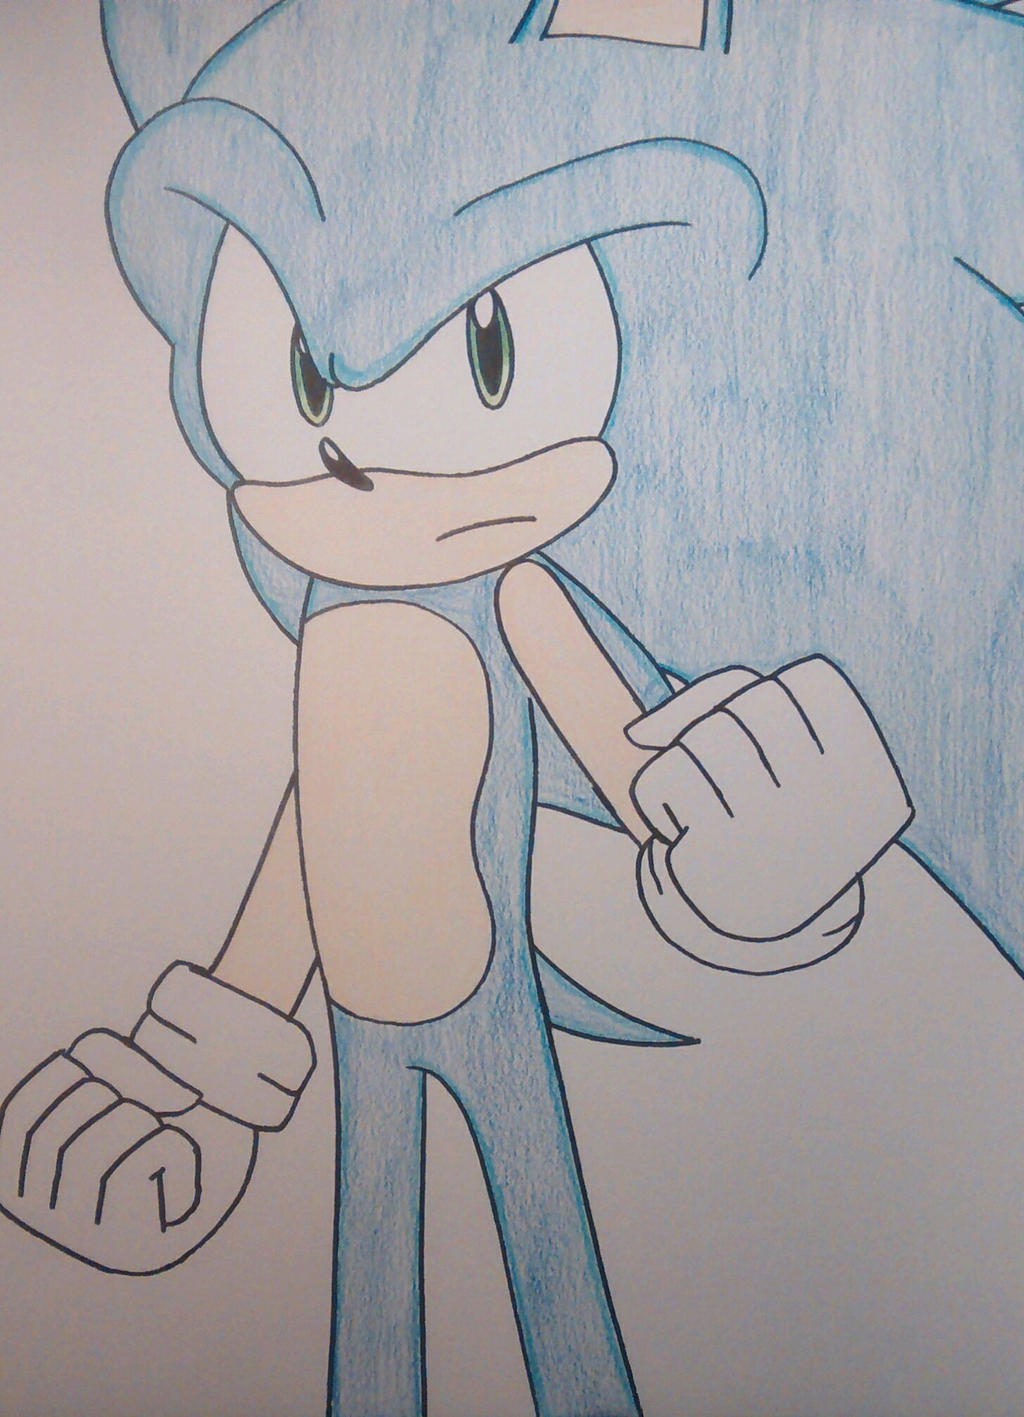 Sonic The Hedgehog By Sonicgirlfriend65 On Deviantart